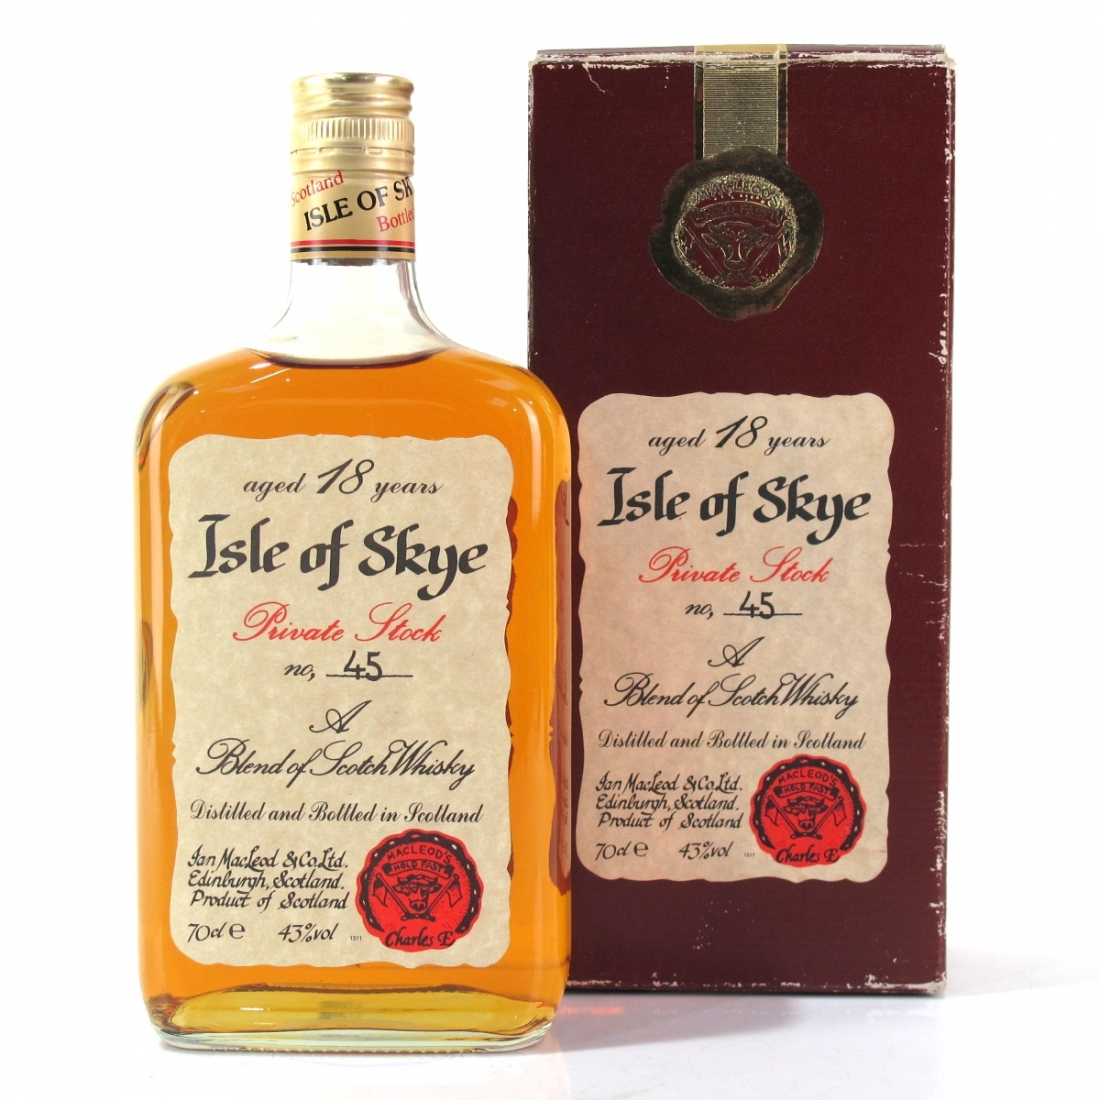 Isle of Skye 18 Year Old Private Stock